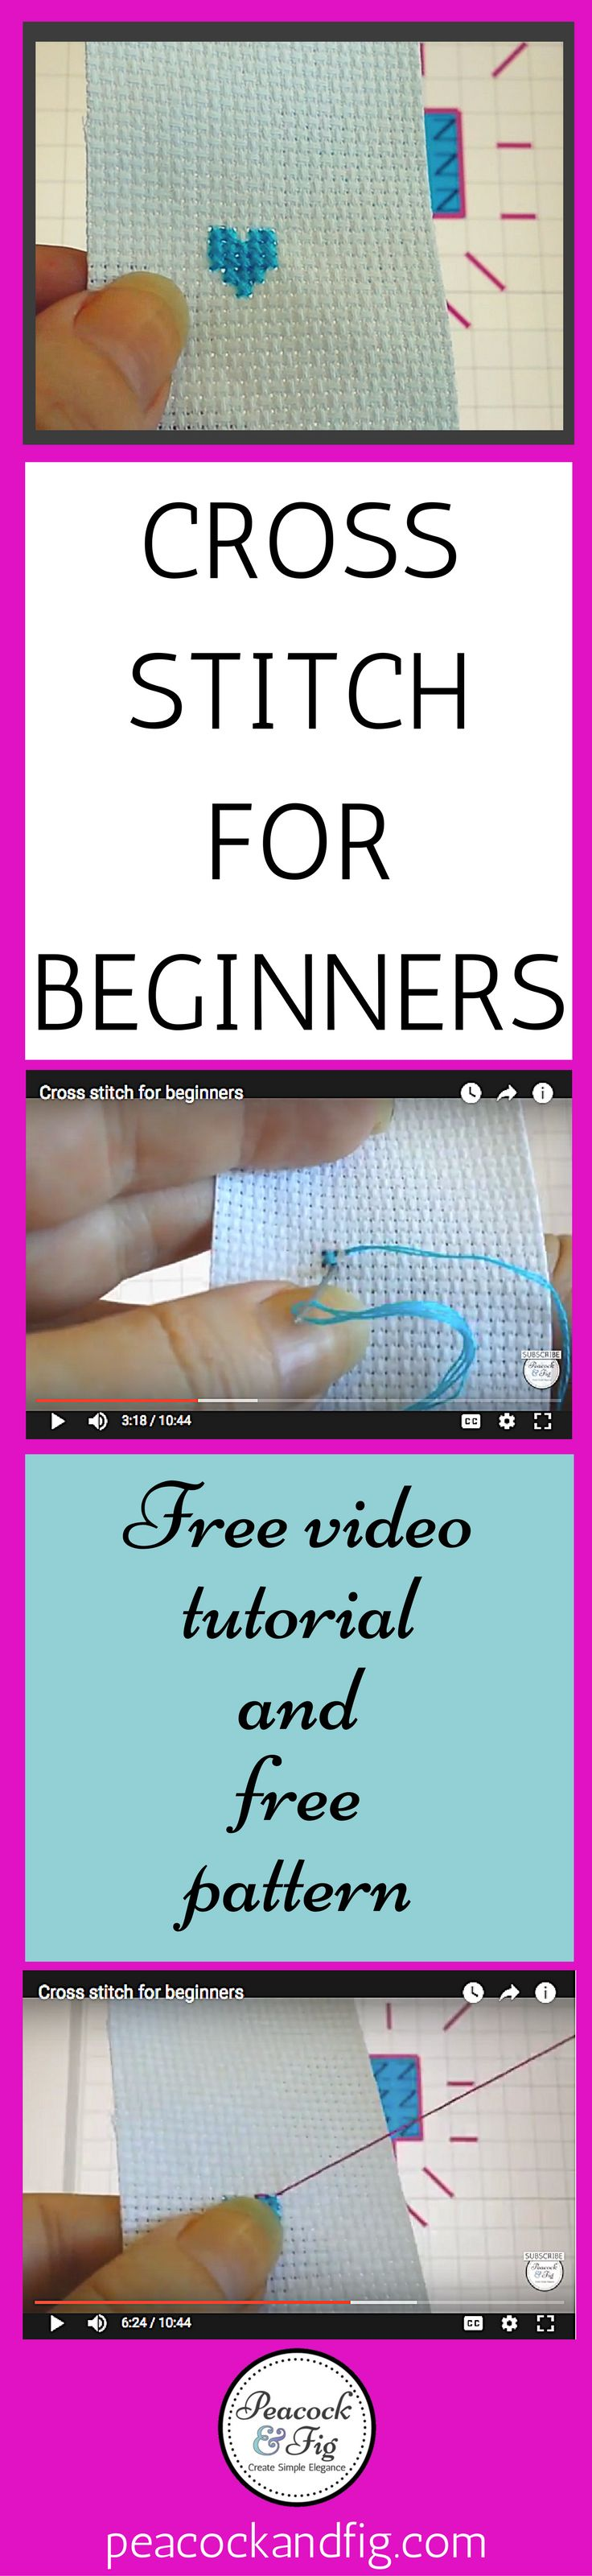 Cross stitch for beginners video tutorial | Learn to stitch in less than 10…